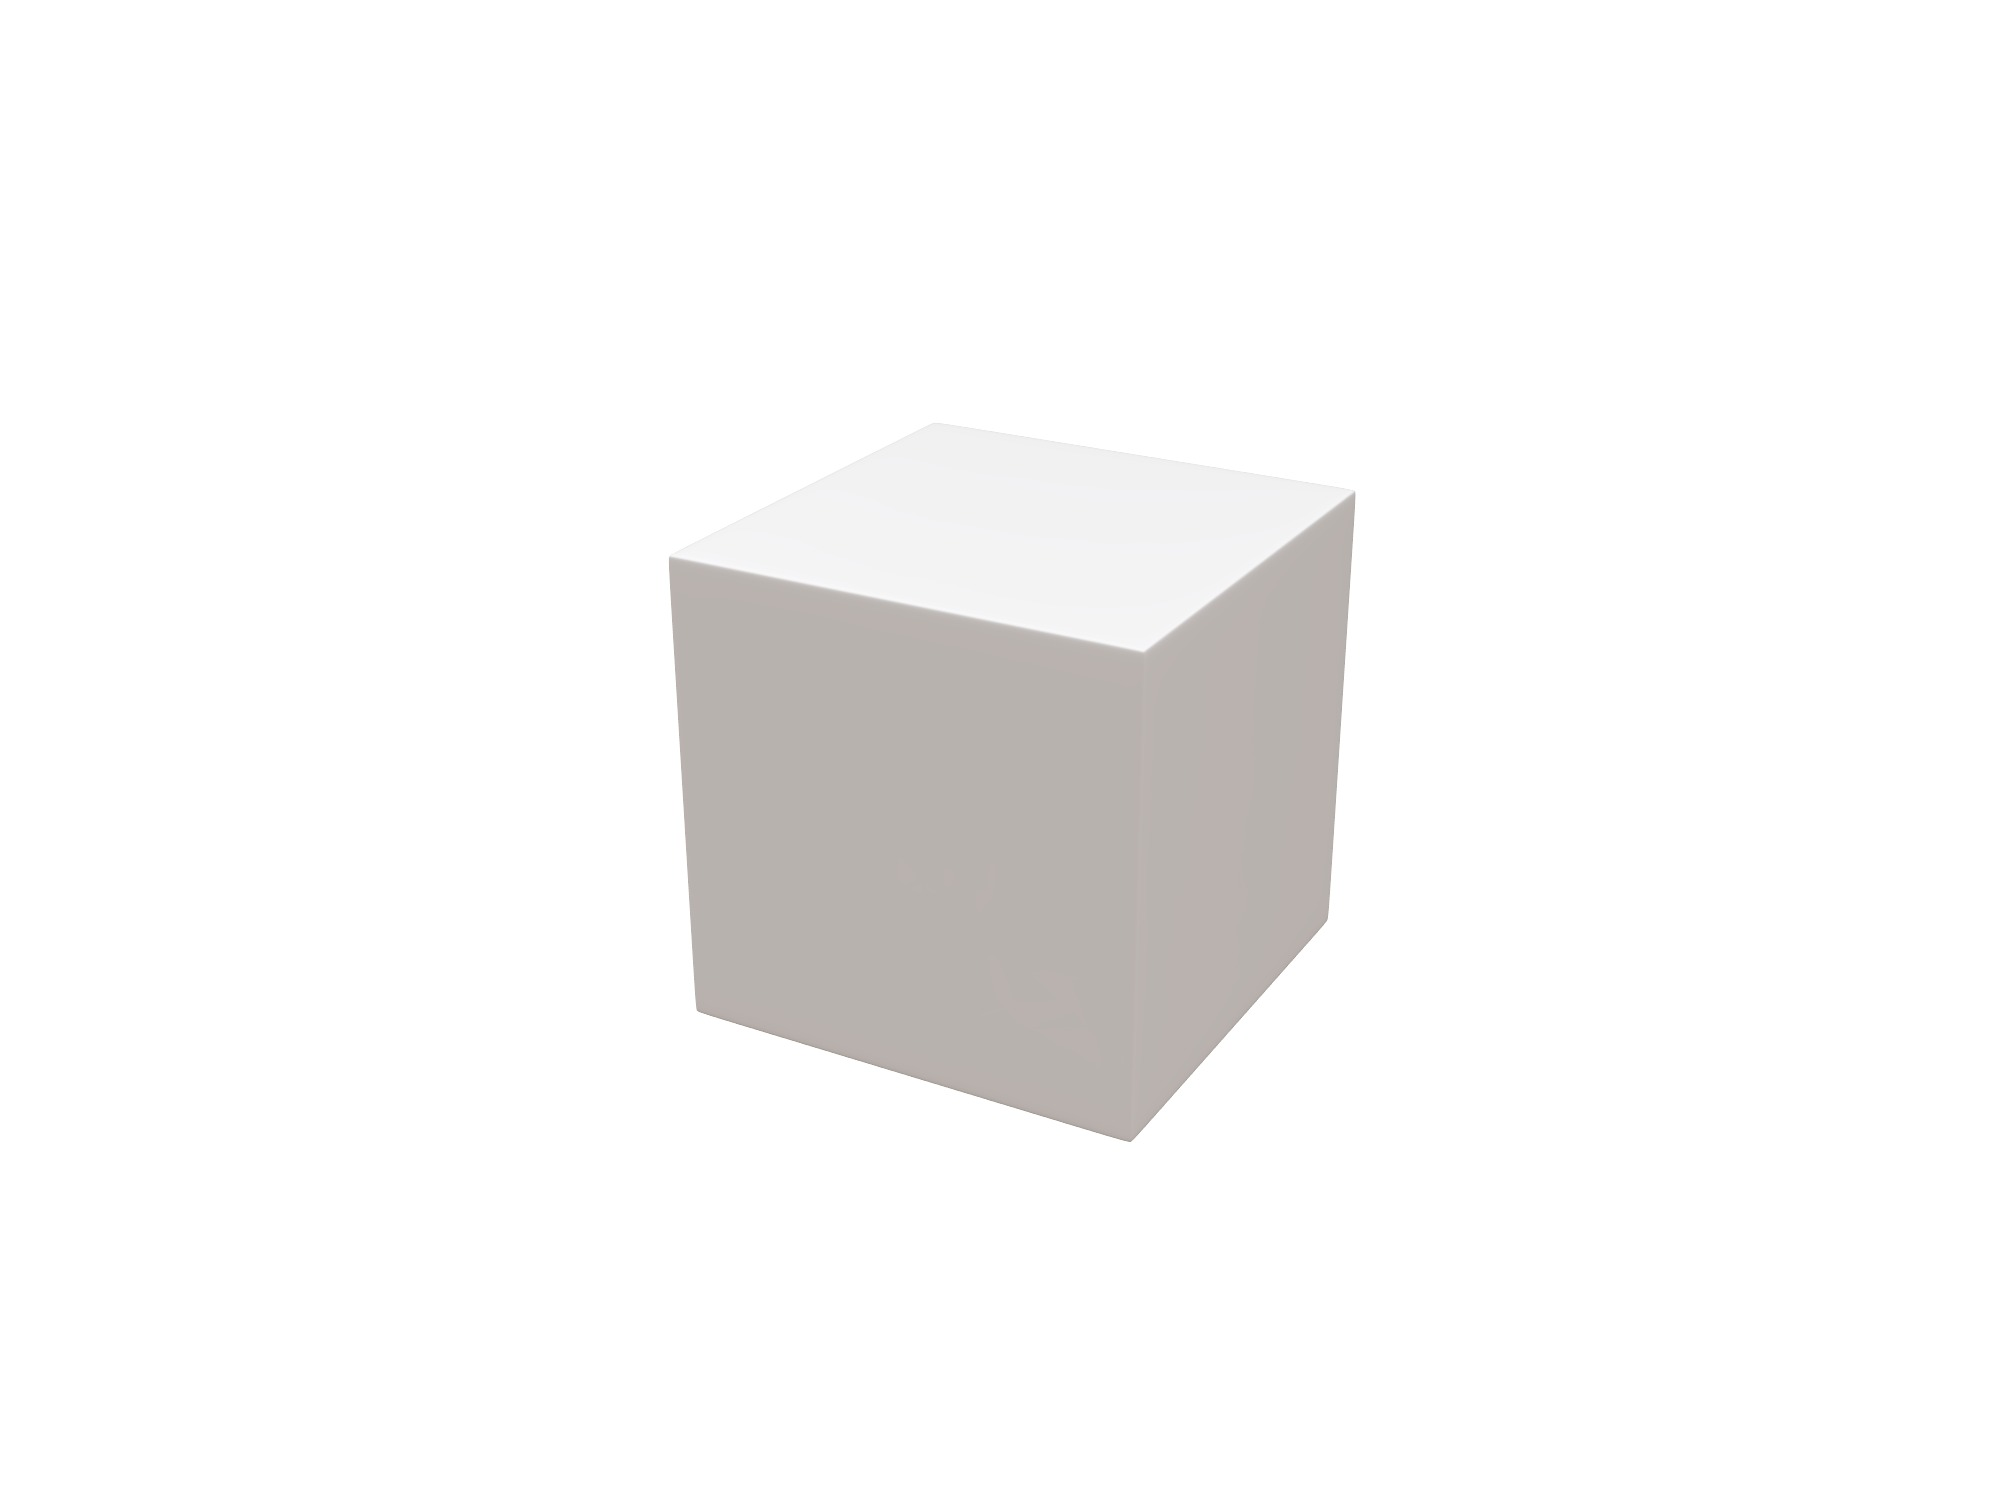 Box - 3D design by Vectary assets Jun 7, 2018